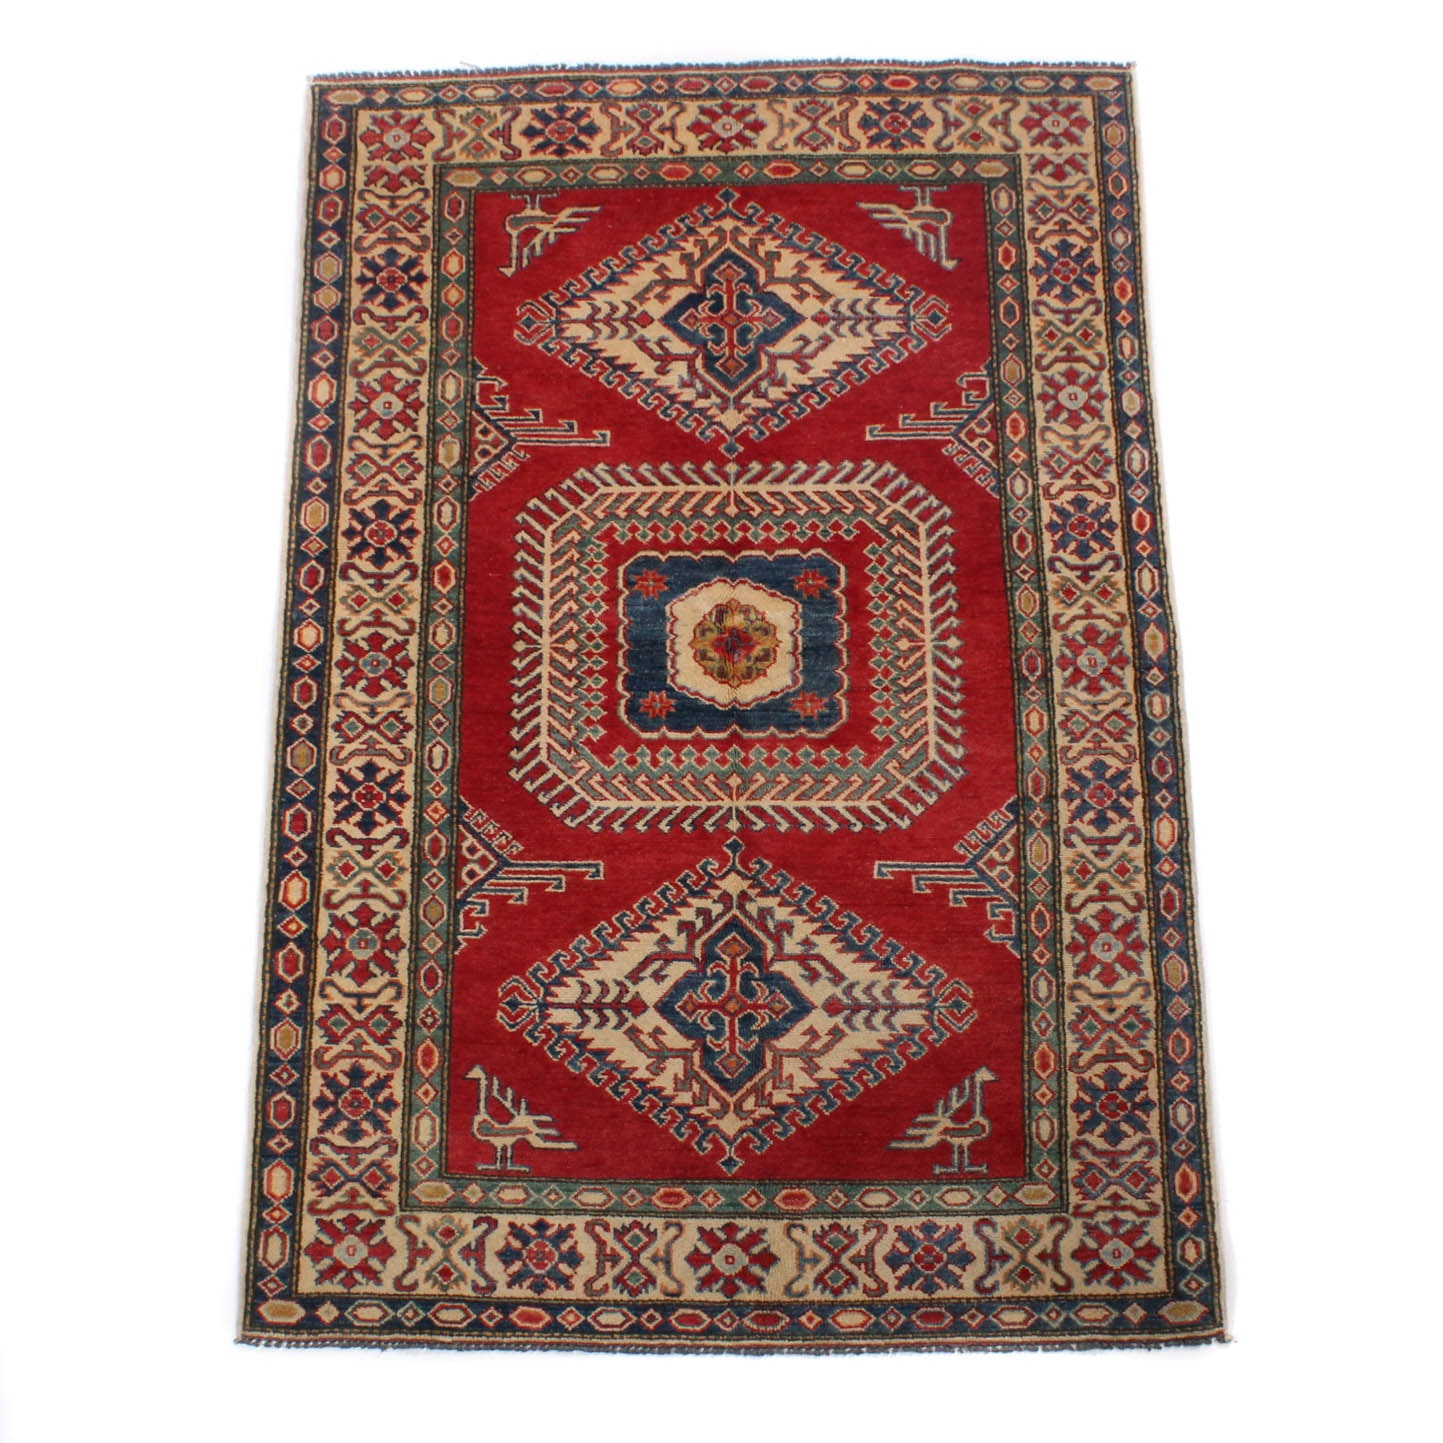 4' x 7' Fine Afghani Caucasian Pictorial Rug